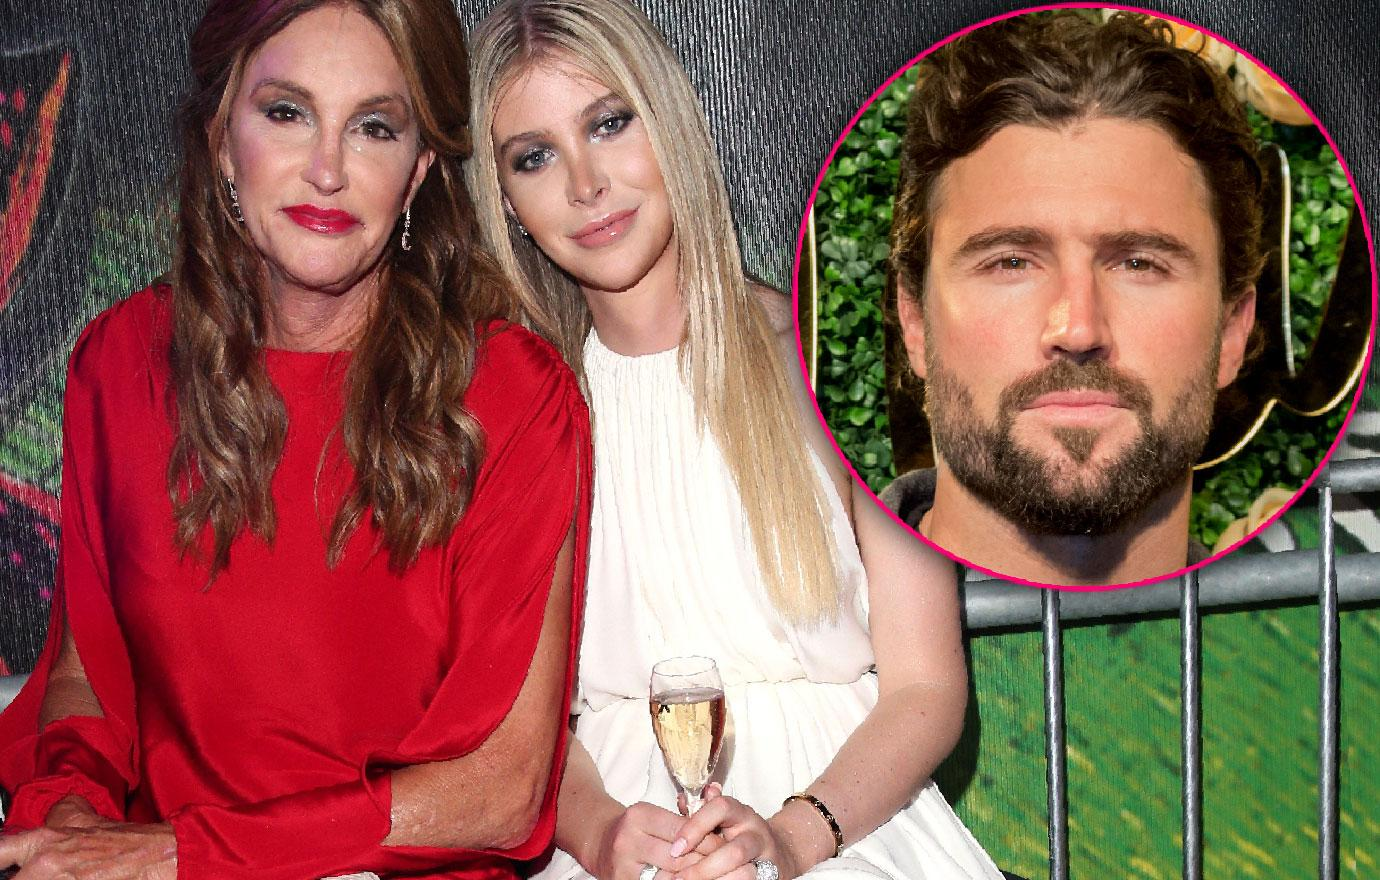 Caitlyn Jenner Celebrates In Austria As Brody Jenner Gets Married in Bali